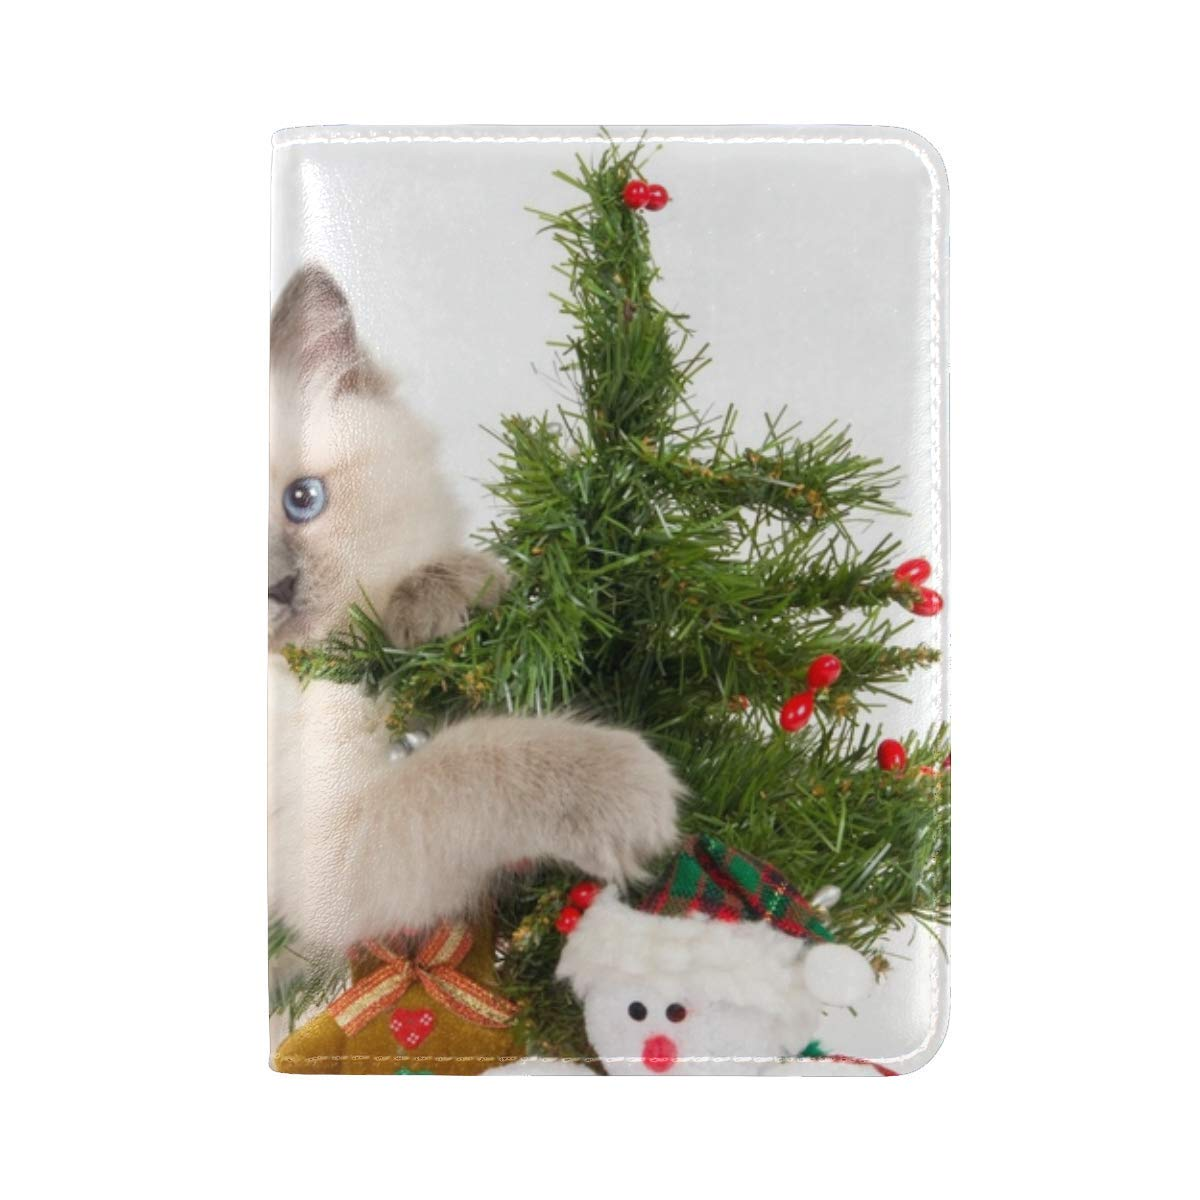 Kitten Toys Tree Playful Leather Passport Holder Cover Case Travel One Pocket